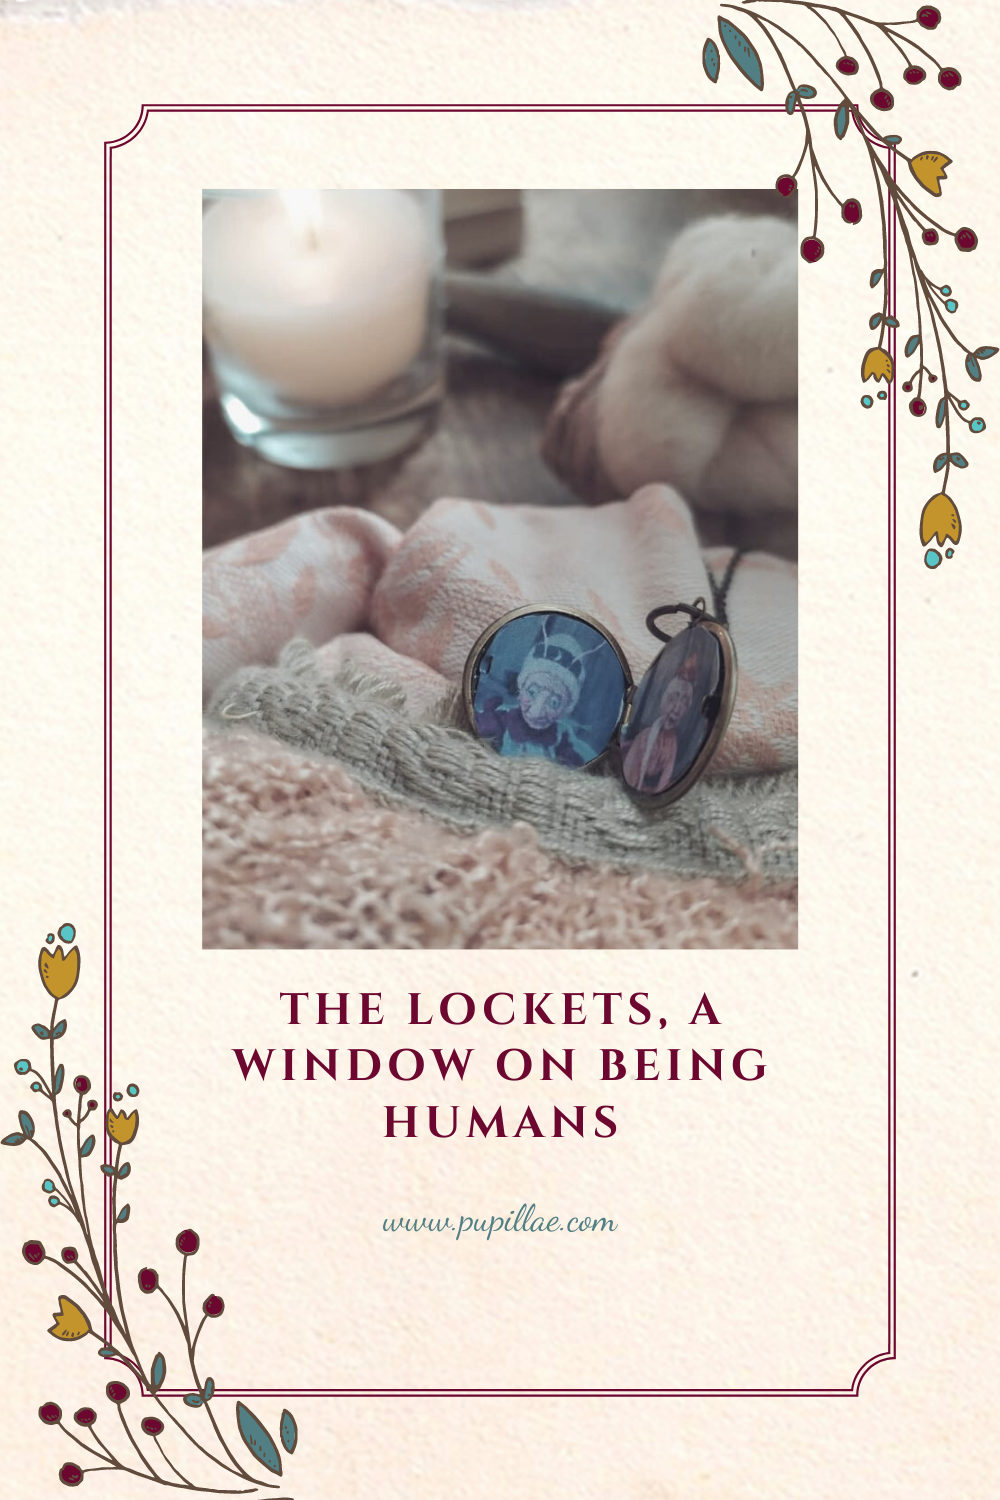 The lockets, a window on being human.